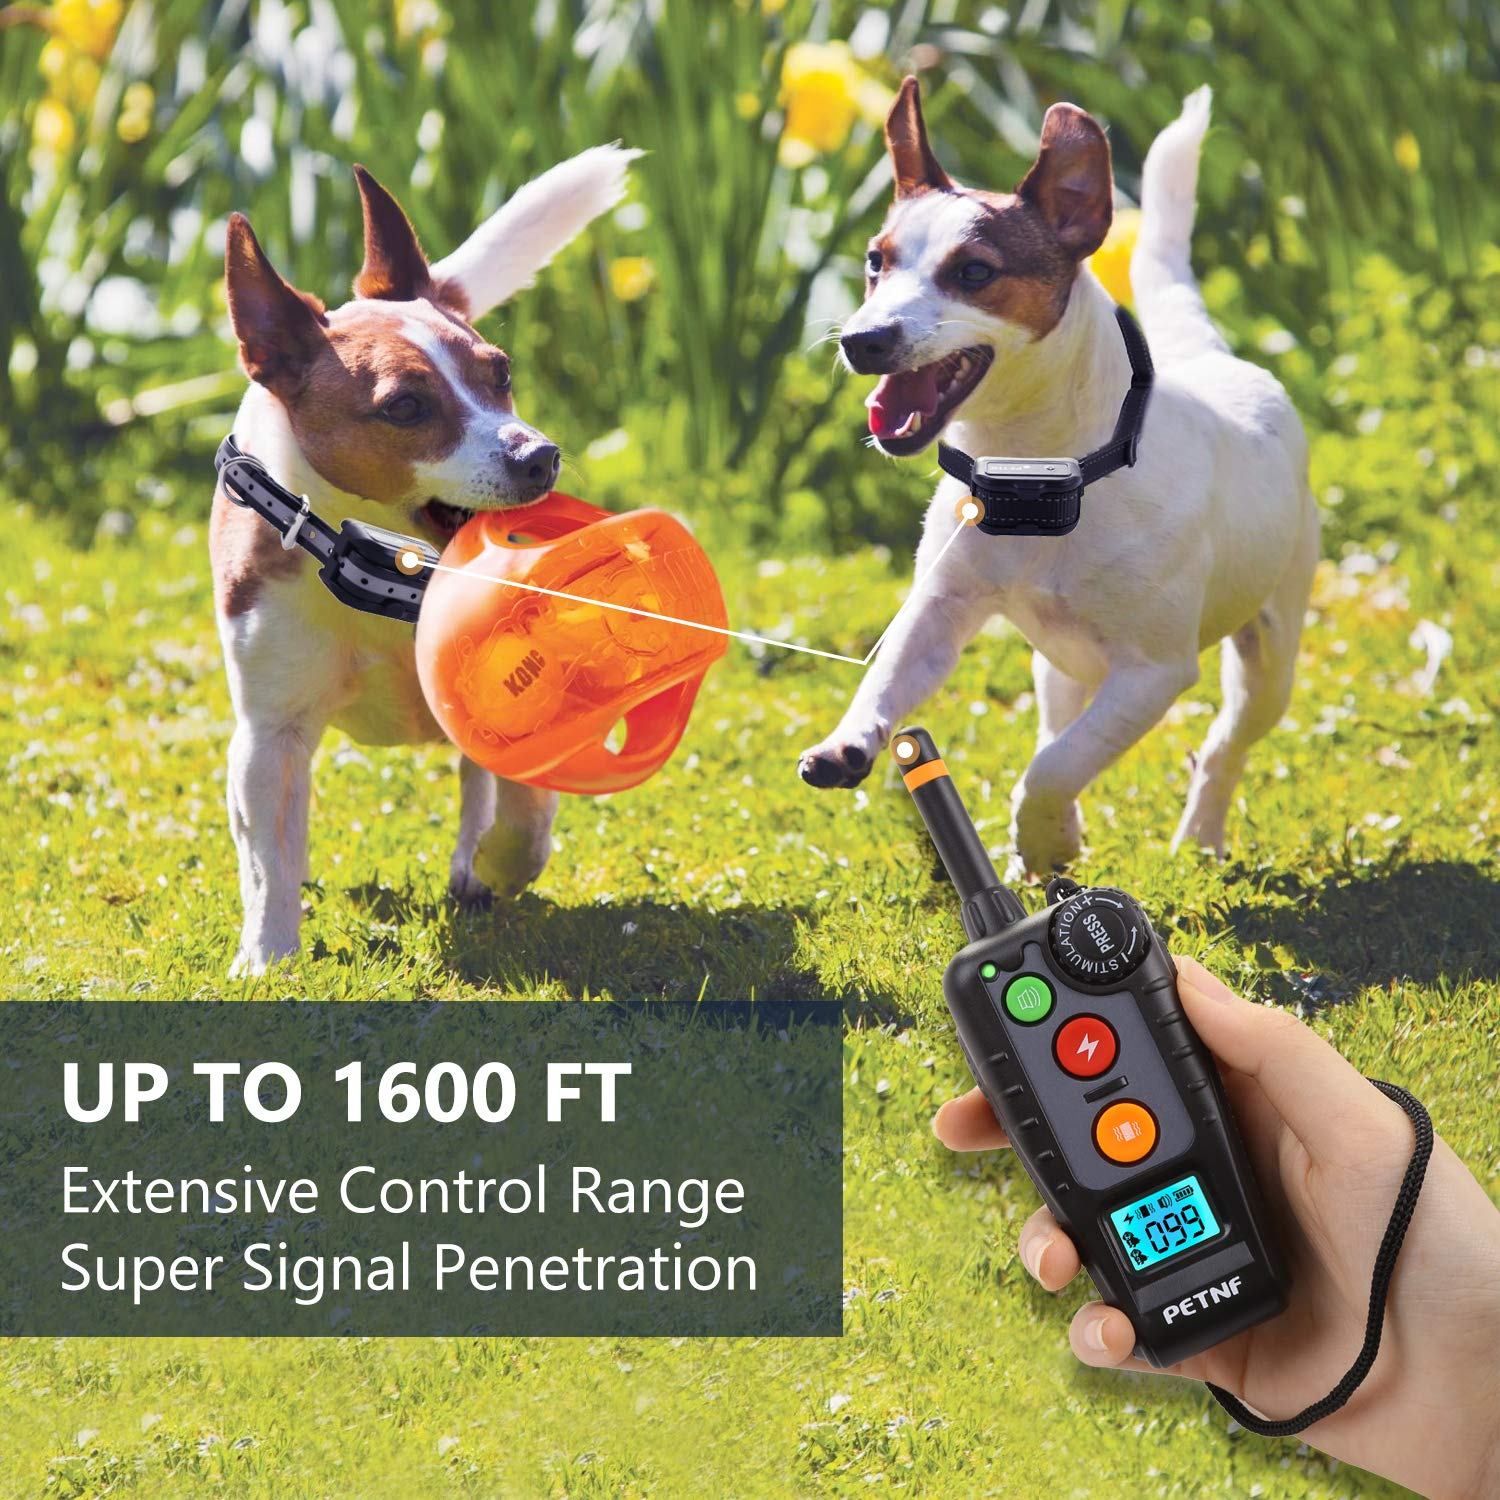 Shock Collar for Dogs,2019 Newest Dog Shock Collar with Remote,Dog Training Collar, Electric Bark Collar Rechargeable Waterproof,3 Training Modes,Remote Range Control,Backlight LCD Screen,Anti Leakage